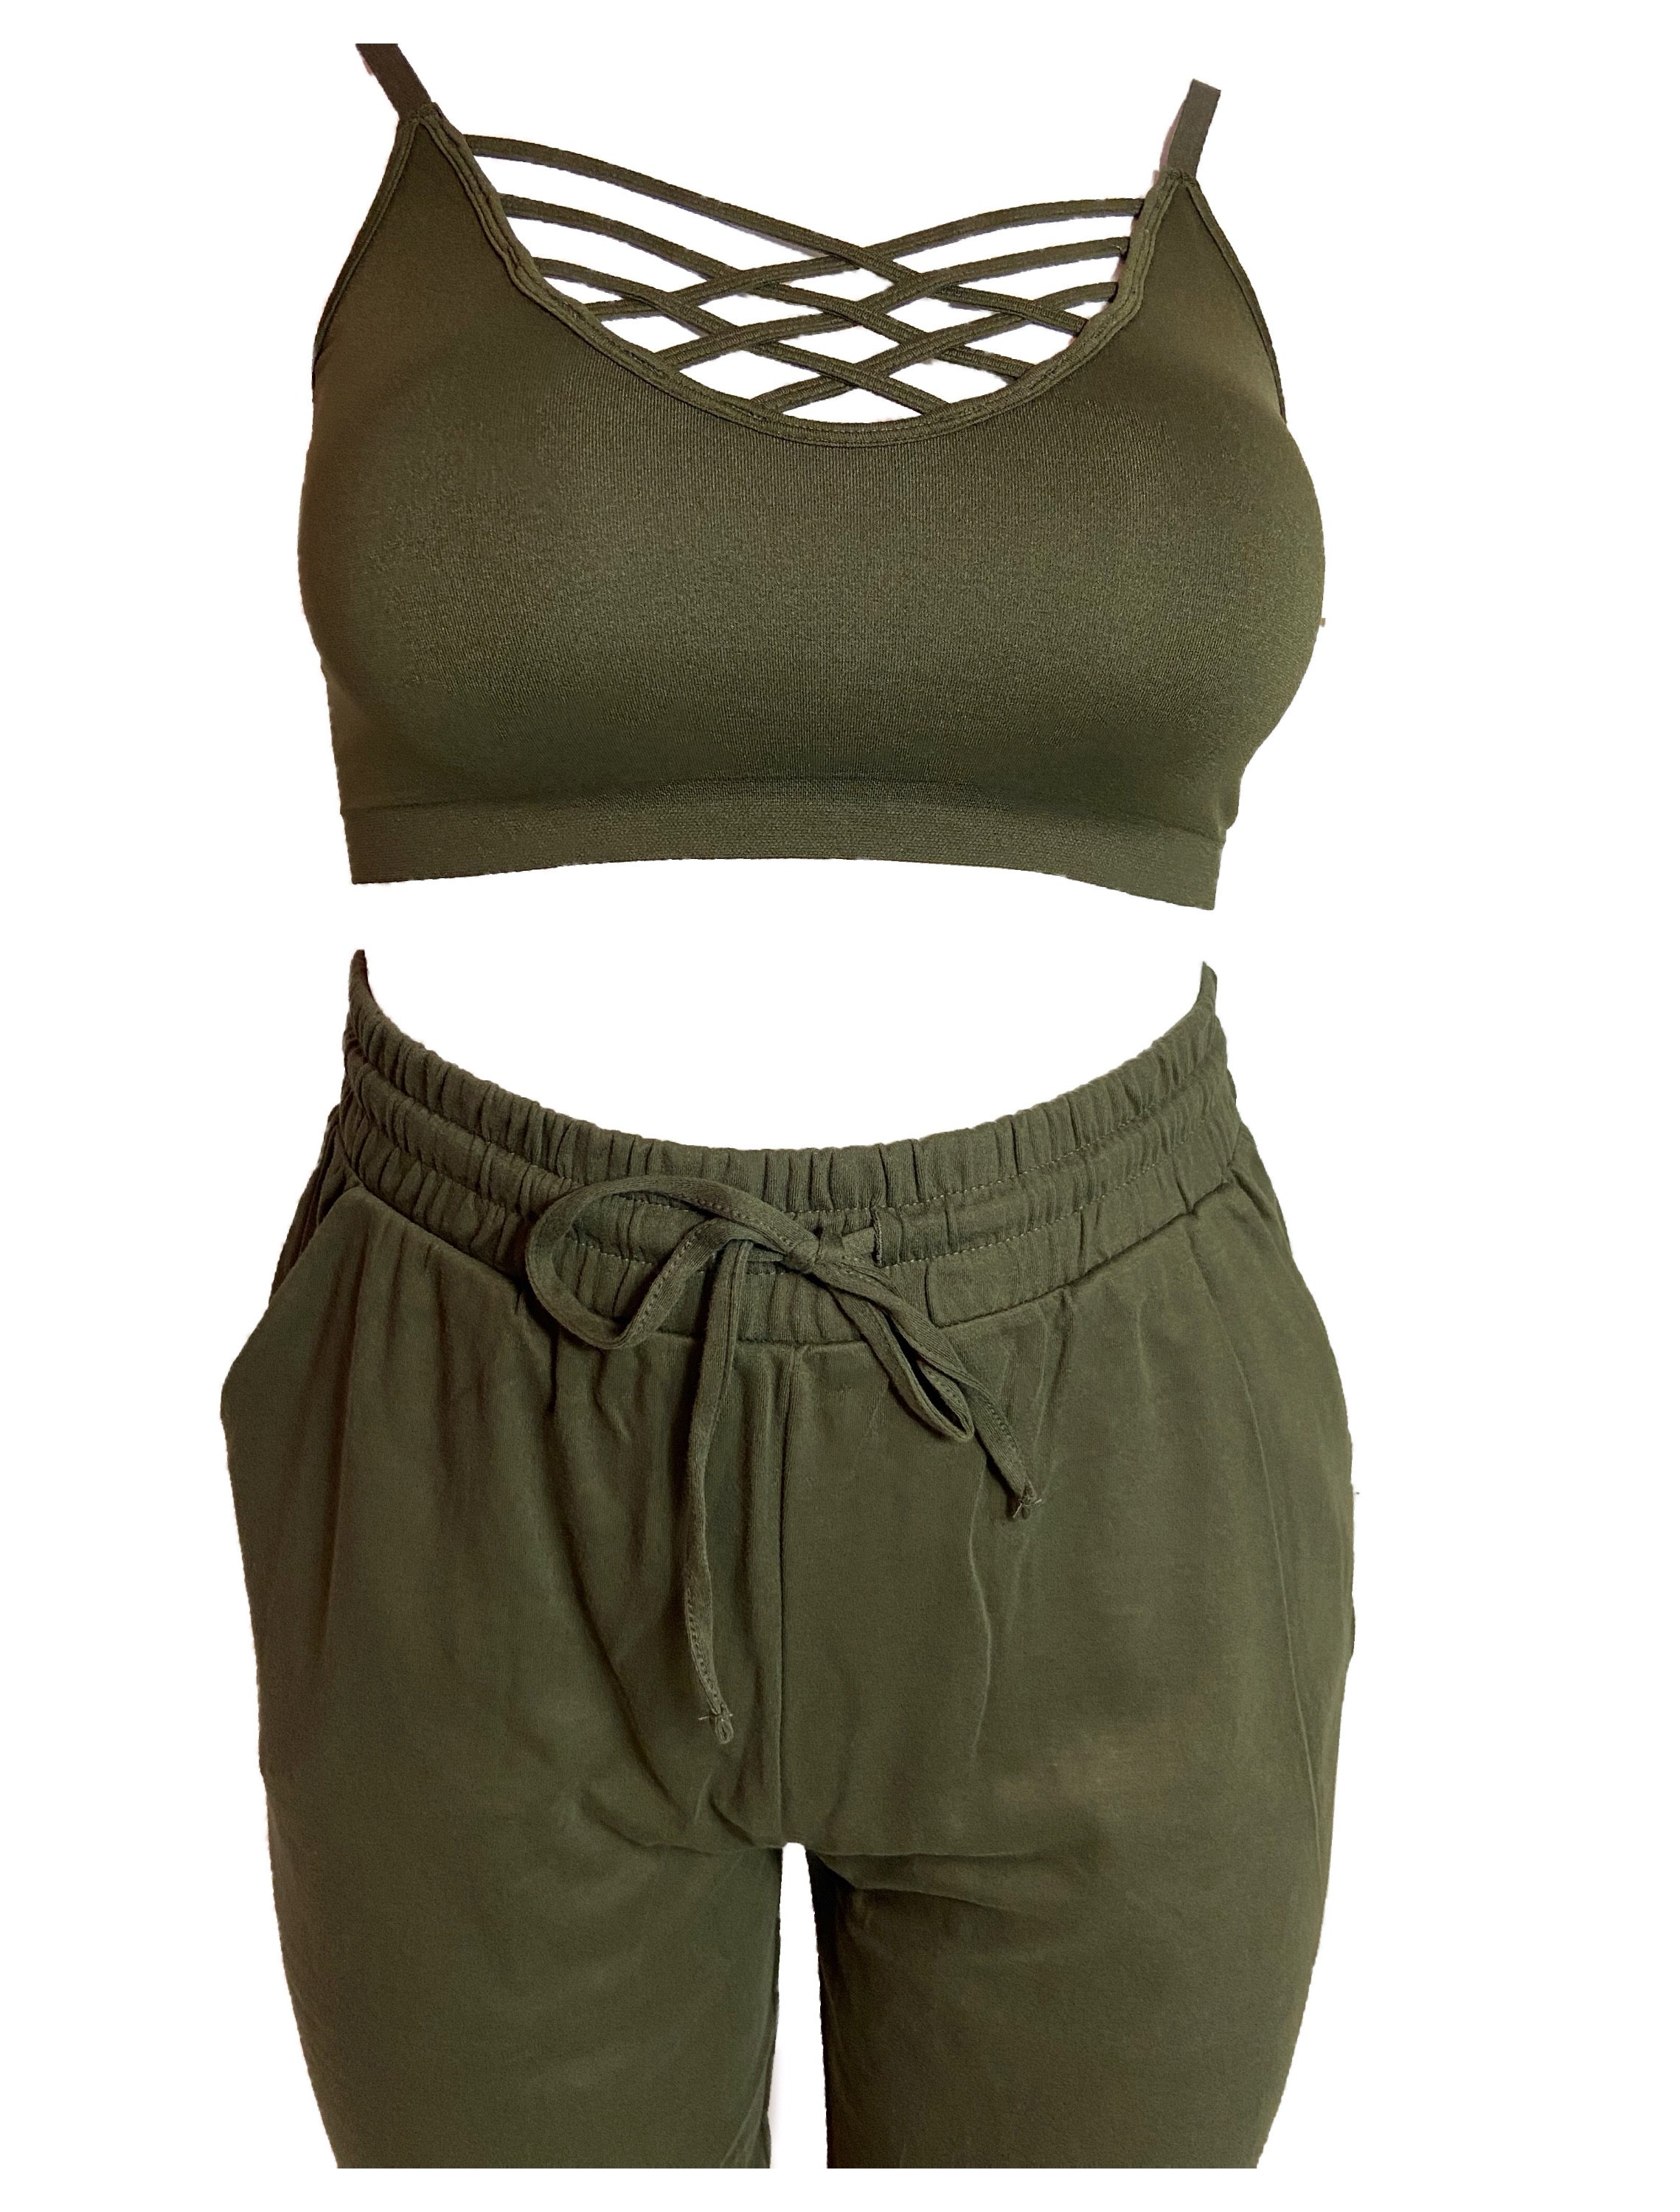 BODY LOUNGE SET - OLIVE